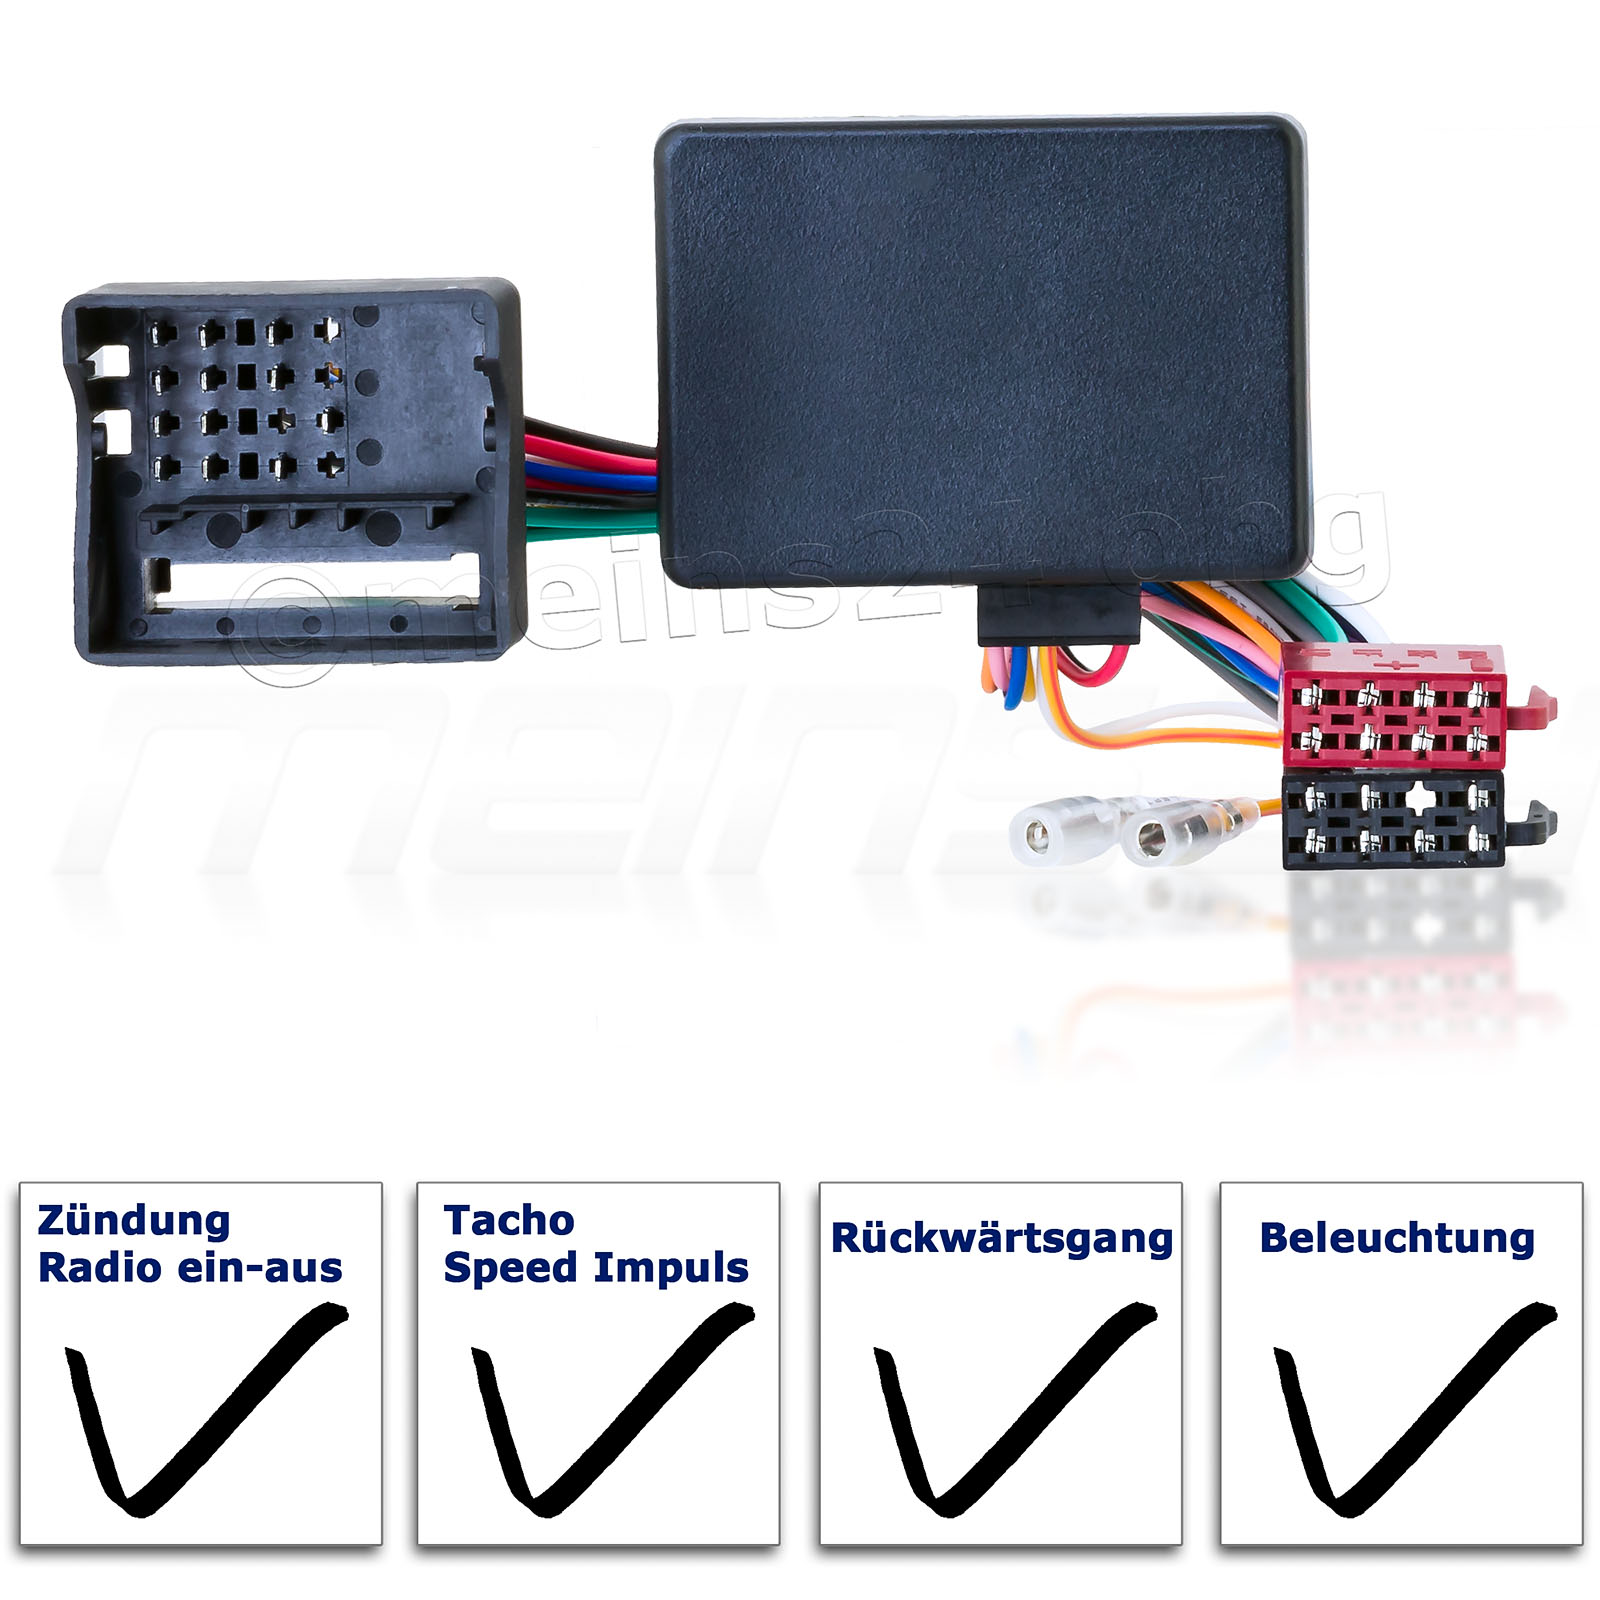 Radioadapter mit CAN-Bus Interface passend für VW SEAT SKODA AUDI